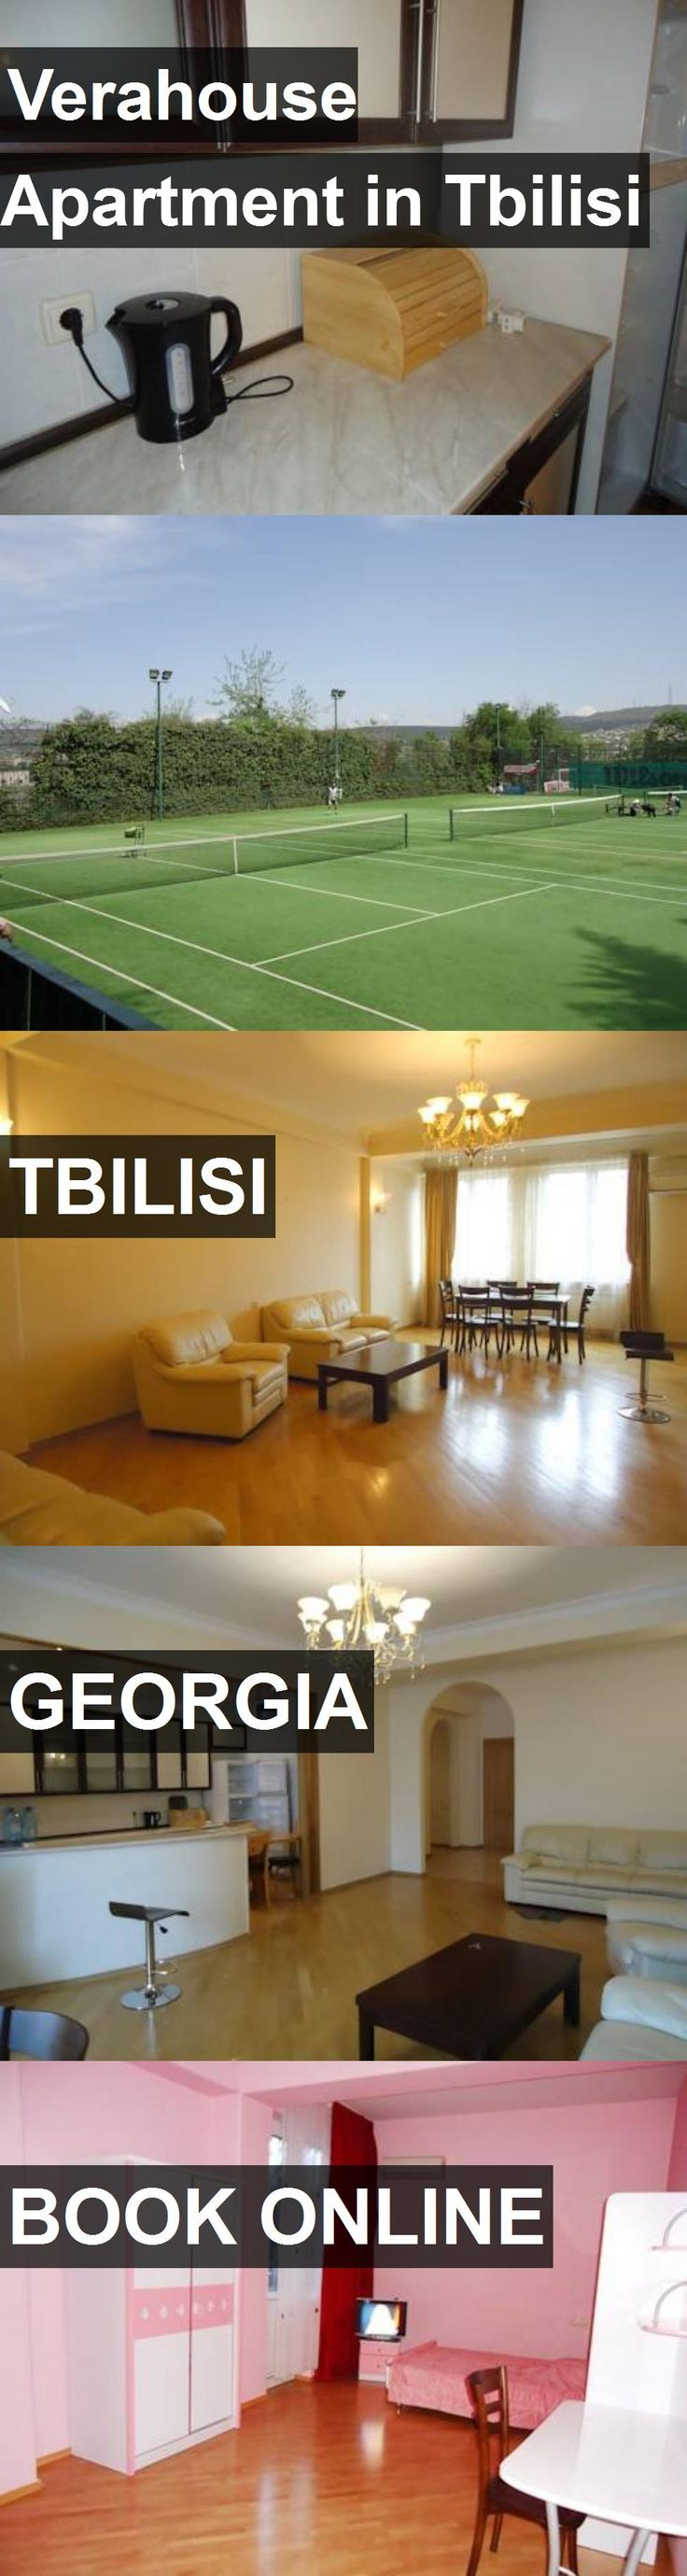 Verahouse Apartment in Tbilisi in Tbilisi, Georgia. For more information, photos, reviews and best prices please follow the link. #Georgia #Tbilisi #travel #vacation #apartment